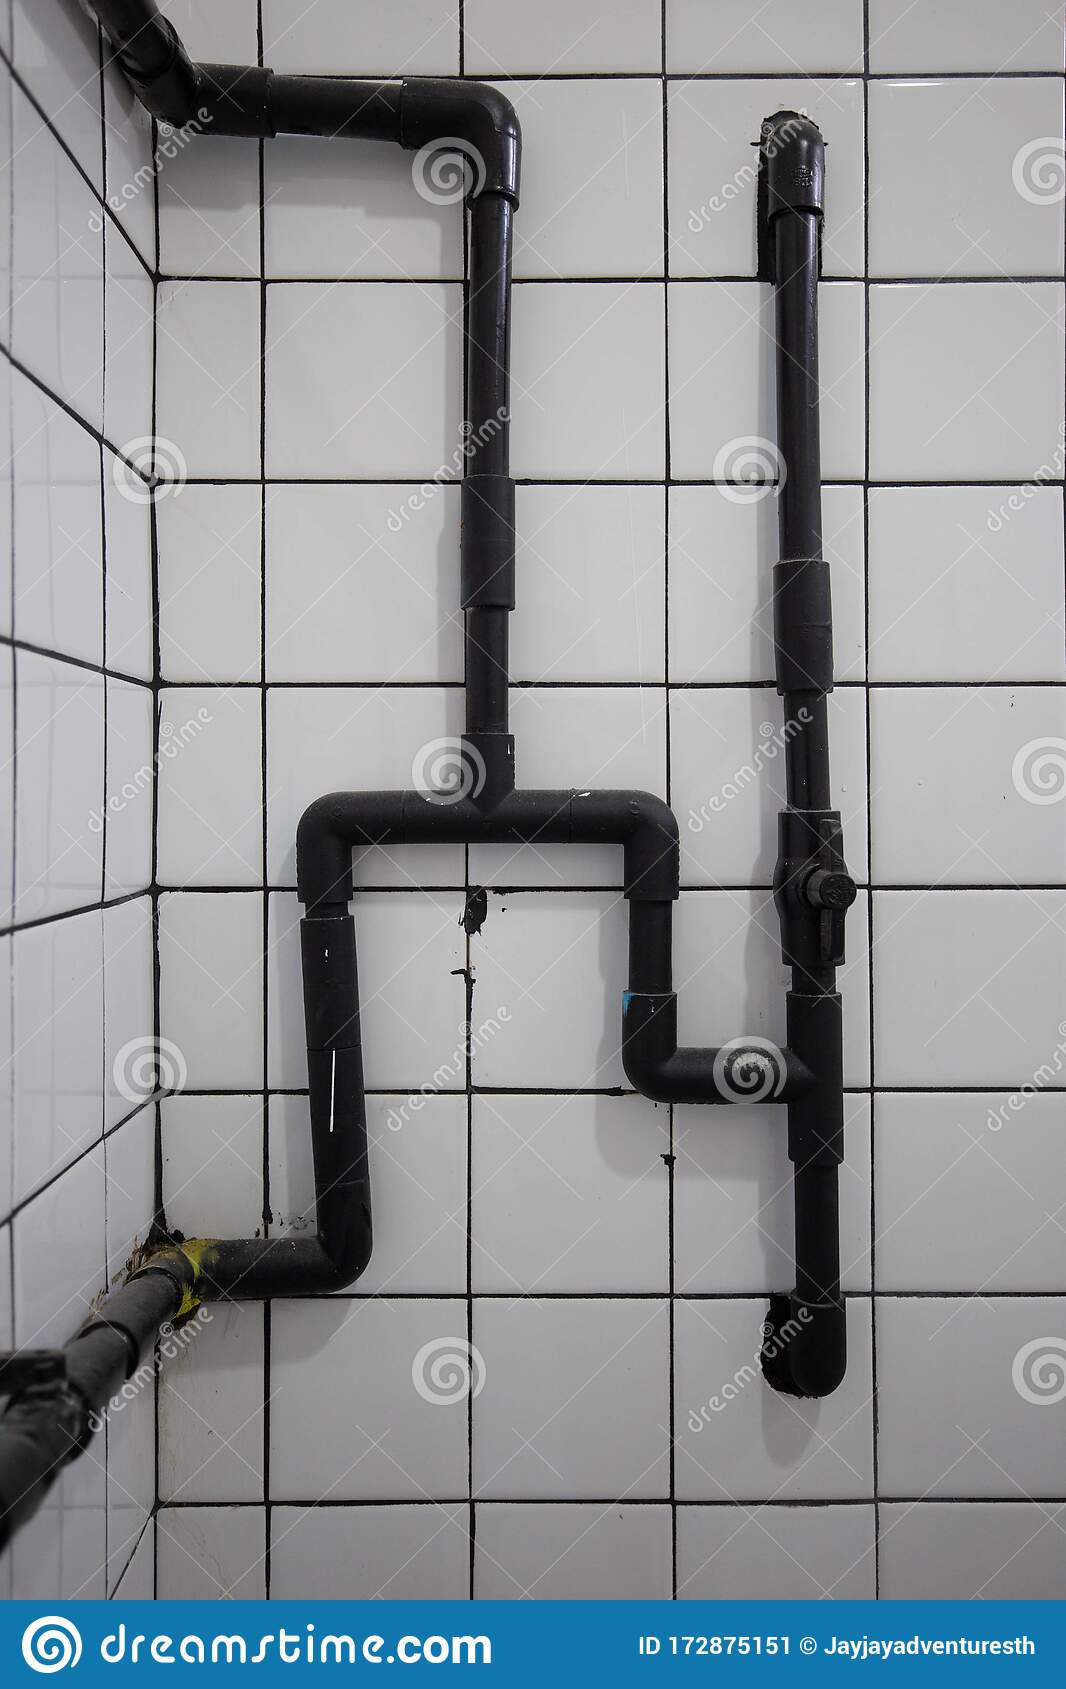 Black Pipe In The Shower Room Bathroom The Wall Decorative With White Glossy Ceramic Tiles Stock Image Image Of Pipeline Architecture 172875151